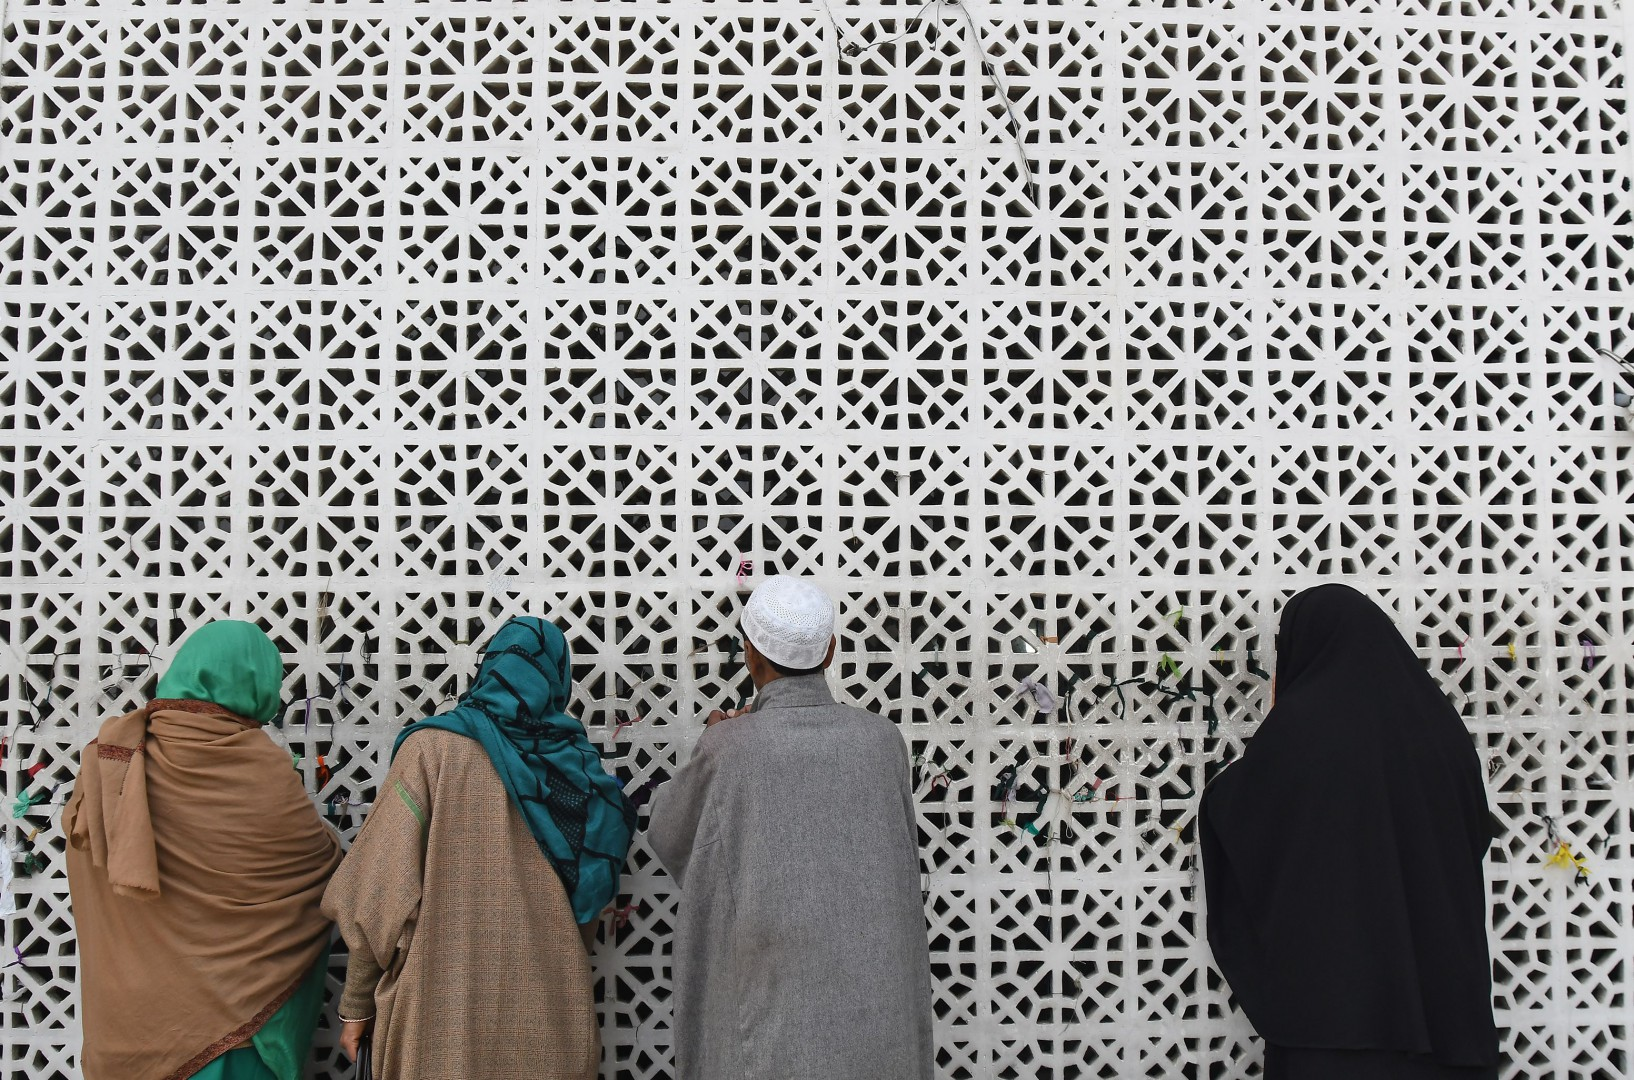 Kashmiri Muslims pray at a wall at Hazratbal Shrine before the presentation of a holy relic, believed to be a hair from the beard of Prophet Muhammad, during Eid Milad-un-Nabi, the birthday of the Prophet, at the Hazratbal Shrine in Srinagar on November 21, 2018. - Thousands of Kashmiri Muslims gathered at the shrine in the summer capital of Jammu and Kashmir to offer prayers on the Prophet's birth anniversary. (Photo by TAUSEEF MUSTAFA / AFP)